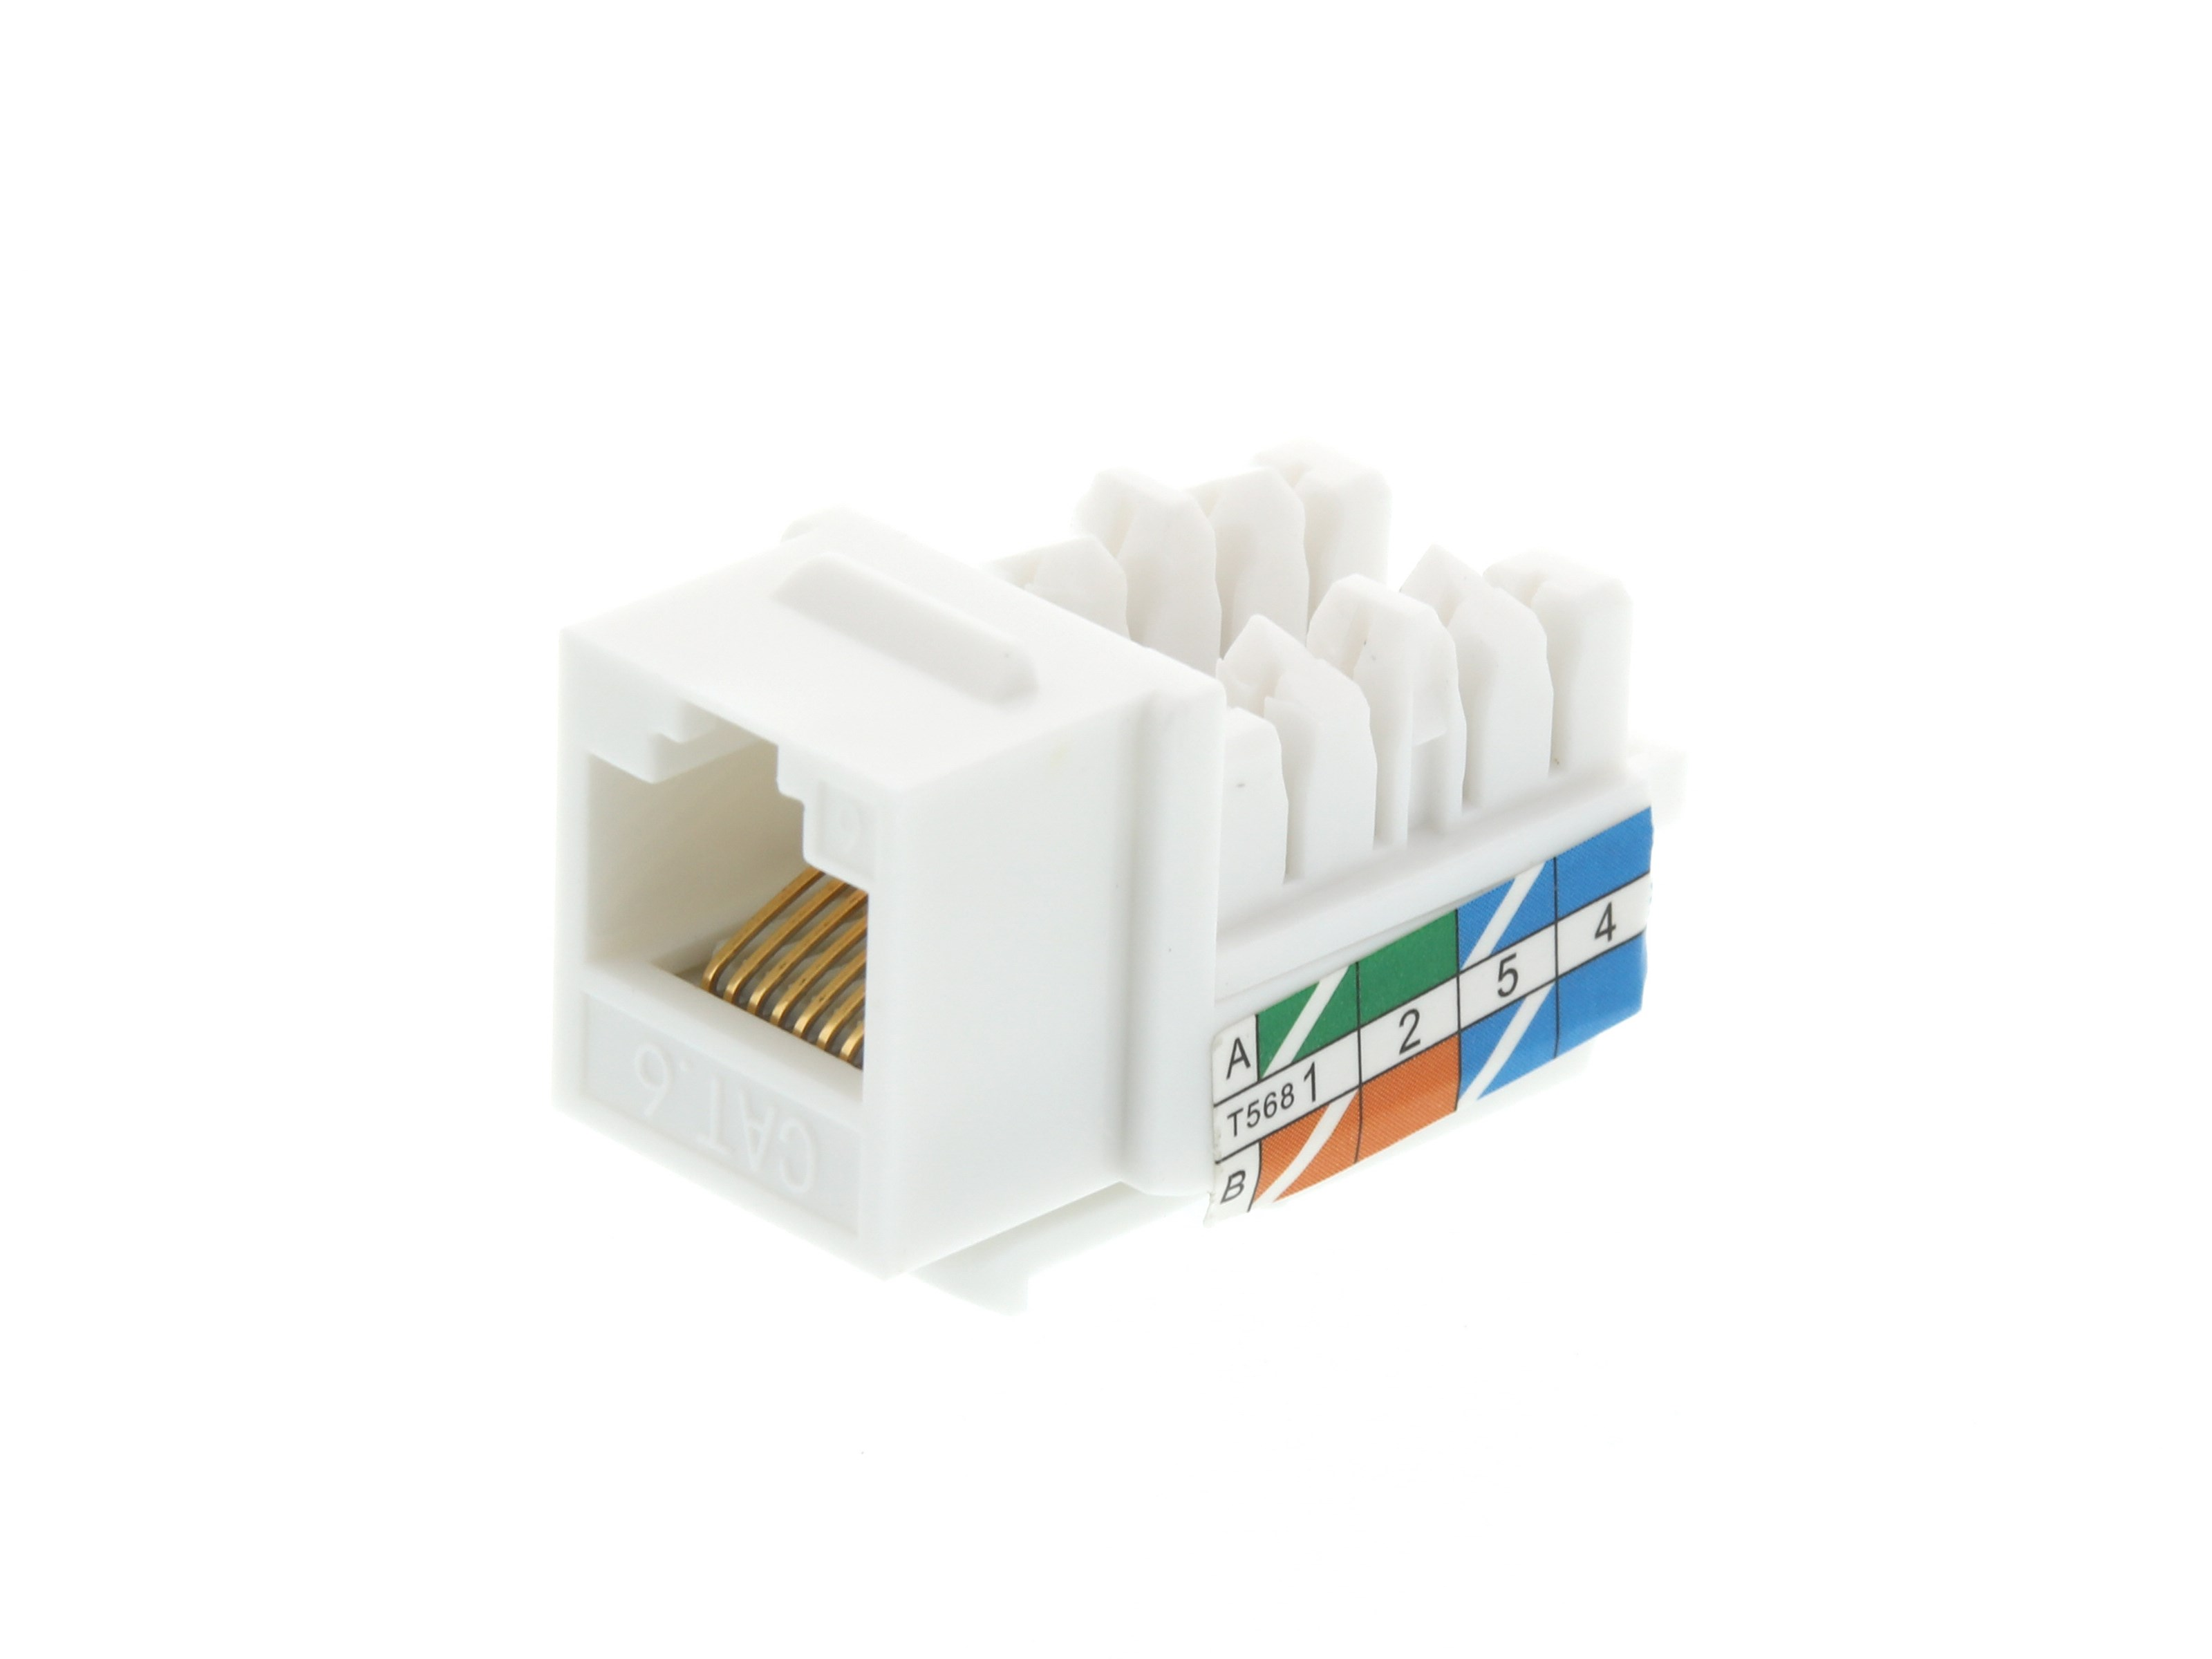 cat 5 wiring diagram wall jack keystone prise electrical wiring data cable wiring diagram cat6 keystone jack 90 degree 110 utp white computer cable store rh computercablestore com cat 6 wiring diagram cat5 plug wiring diagram